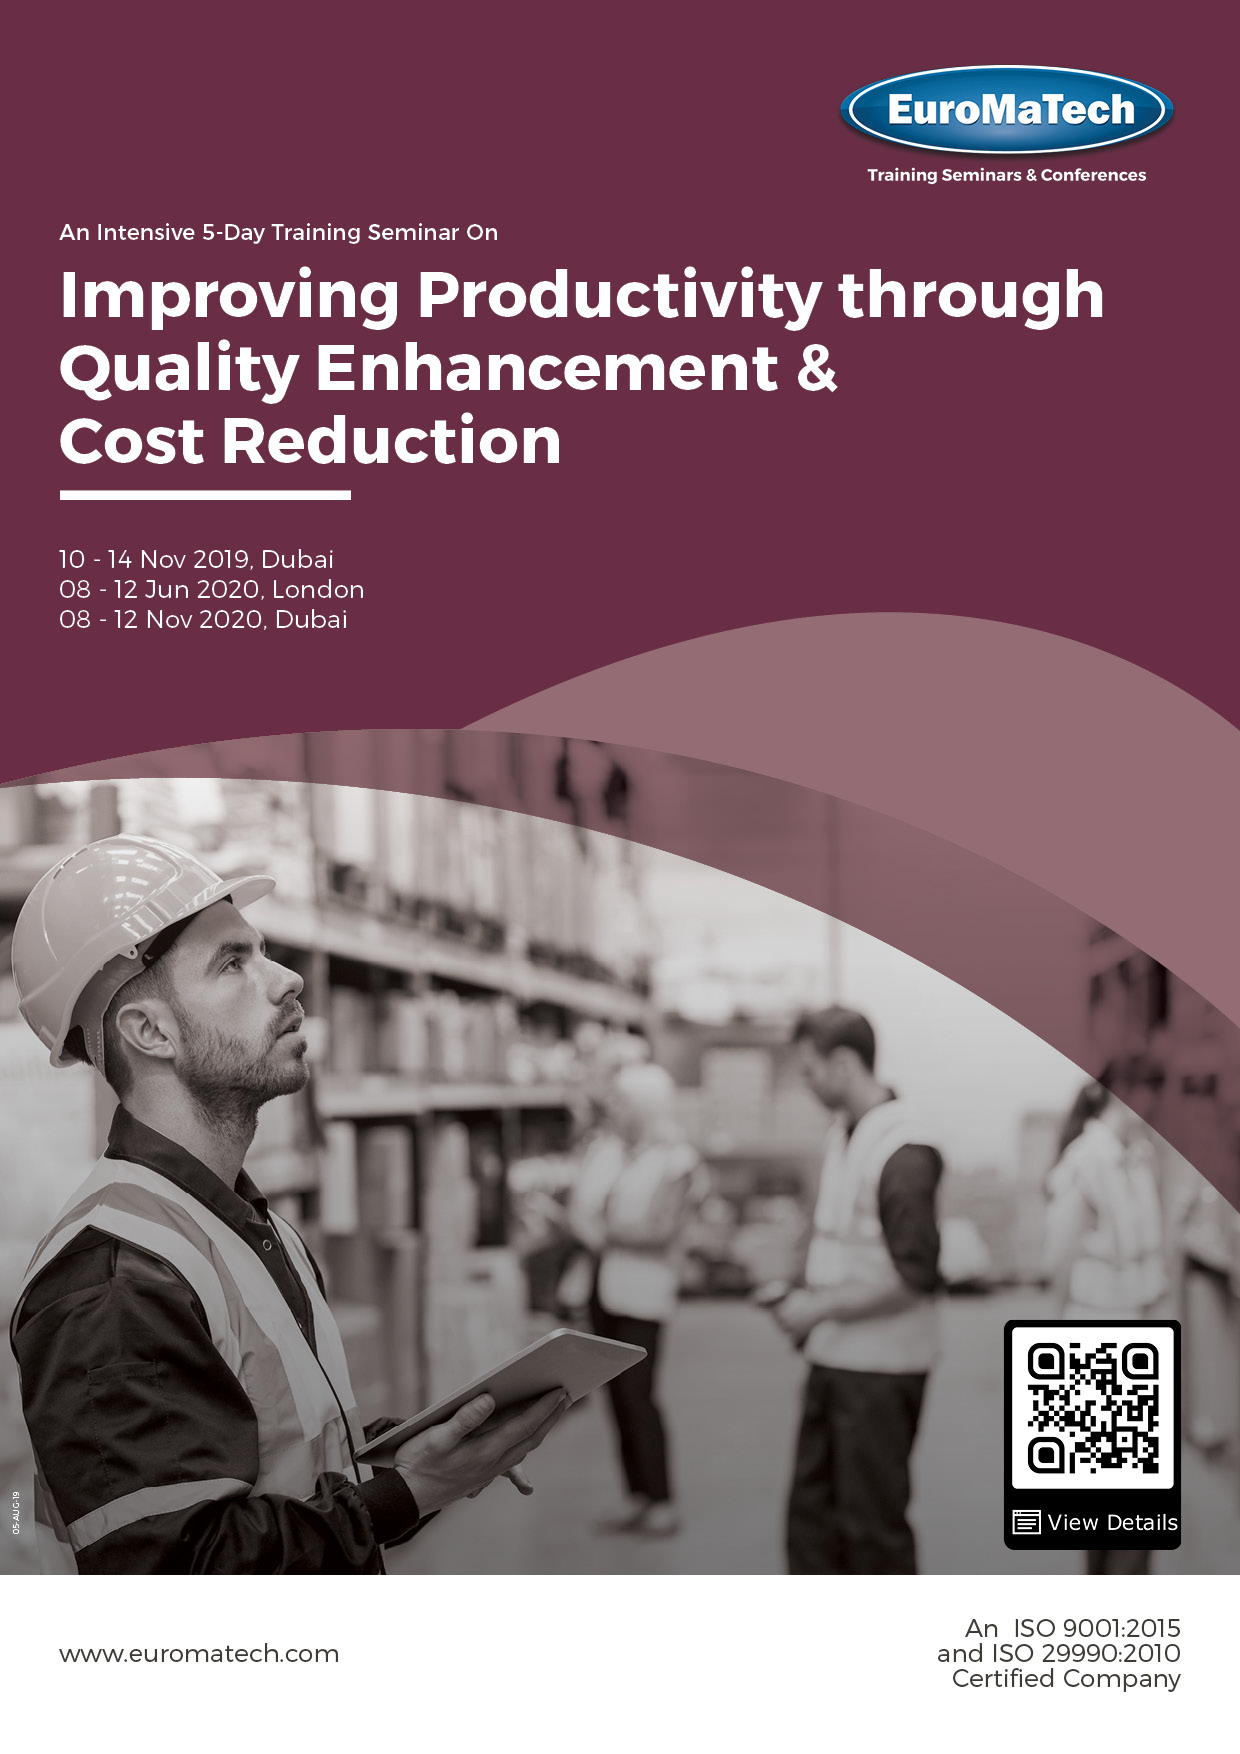 thumbnail of MM118Improving Productivity through Quality Enhancement & Cost Reduction